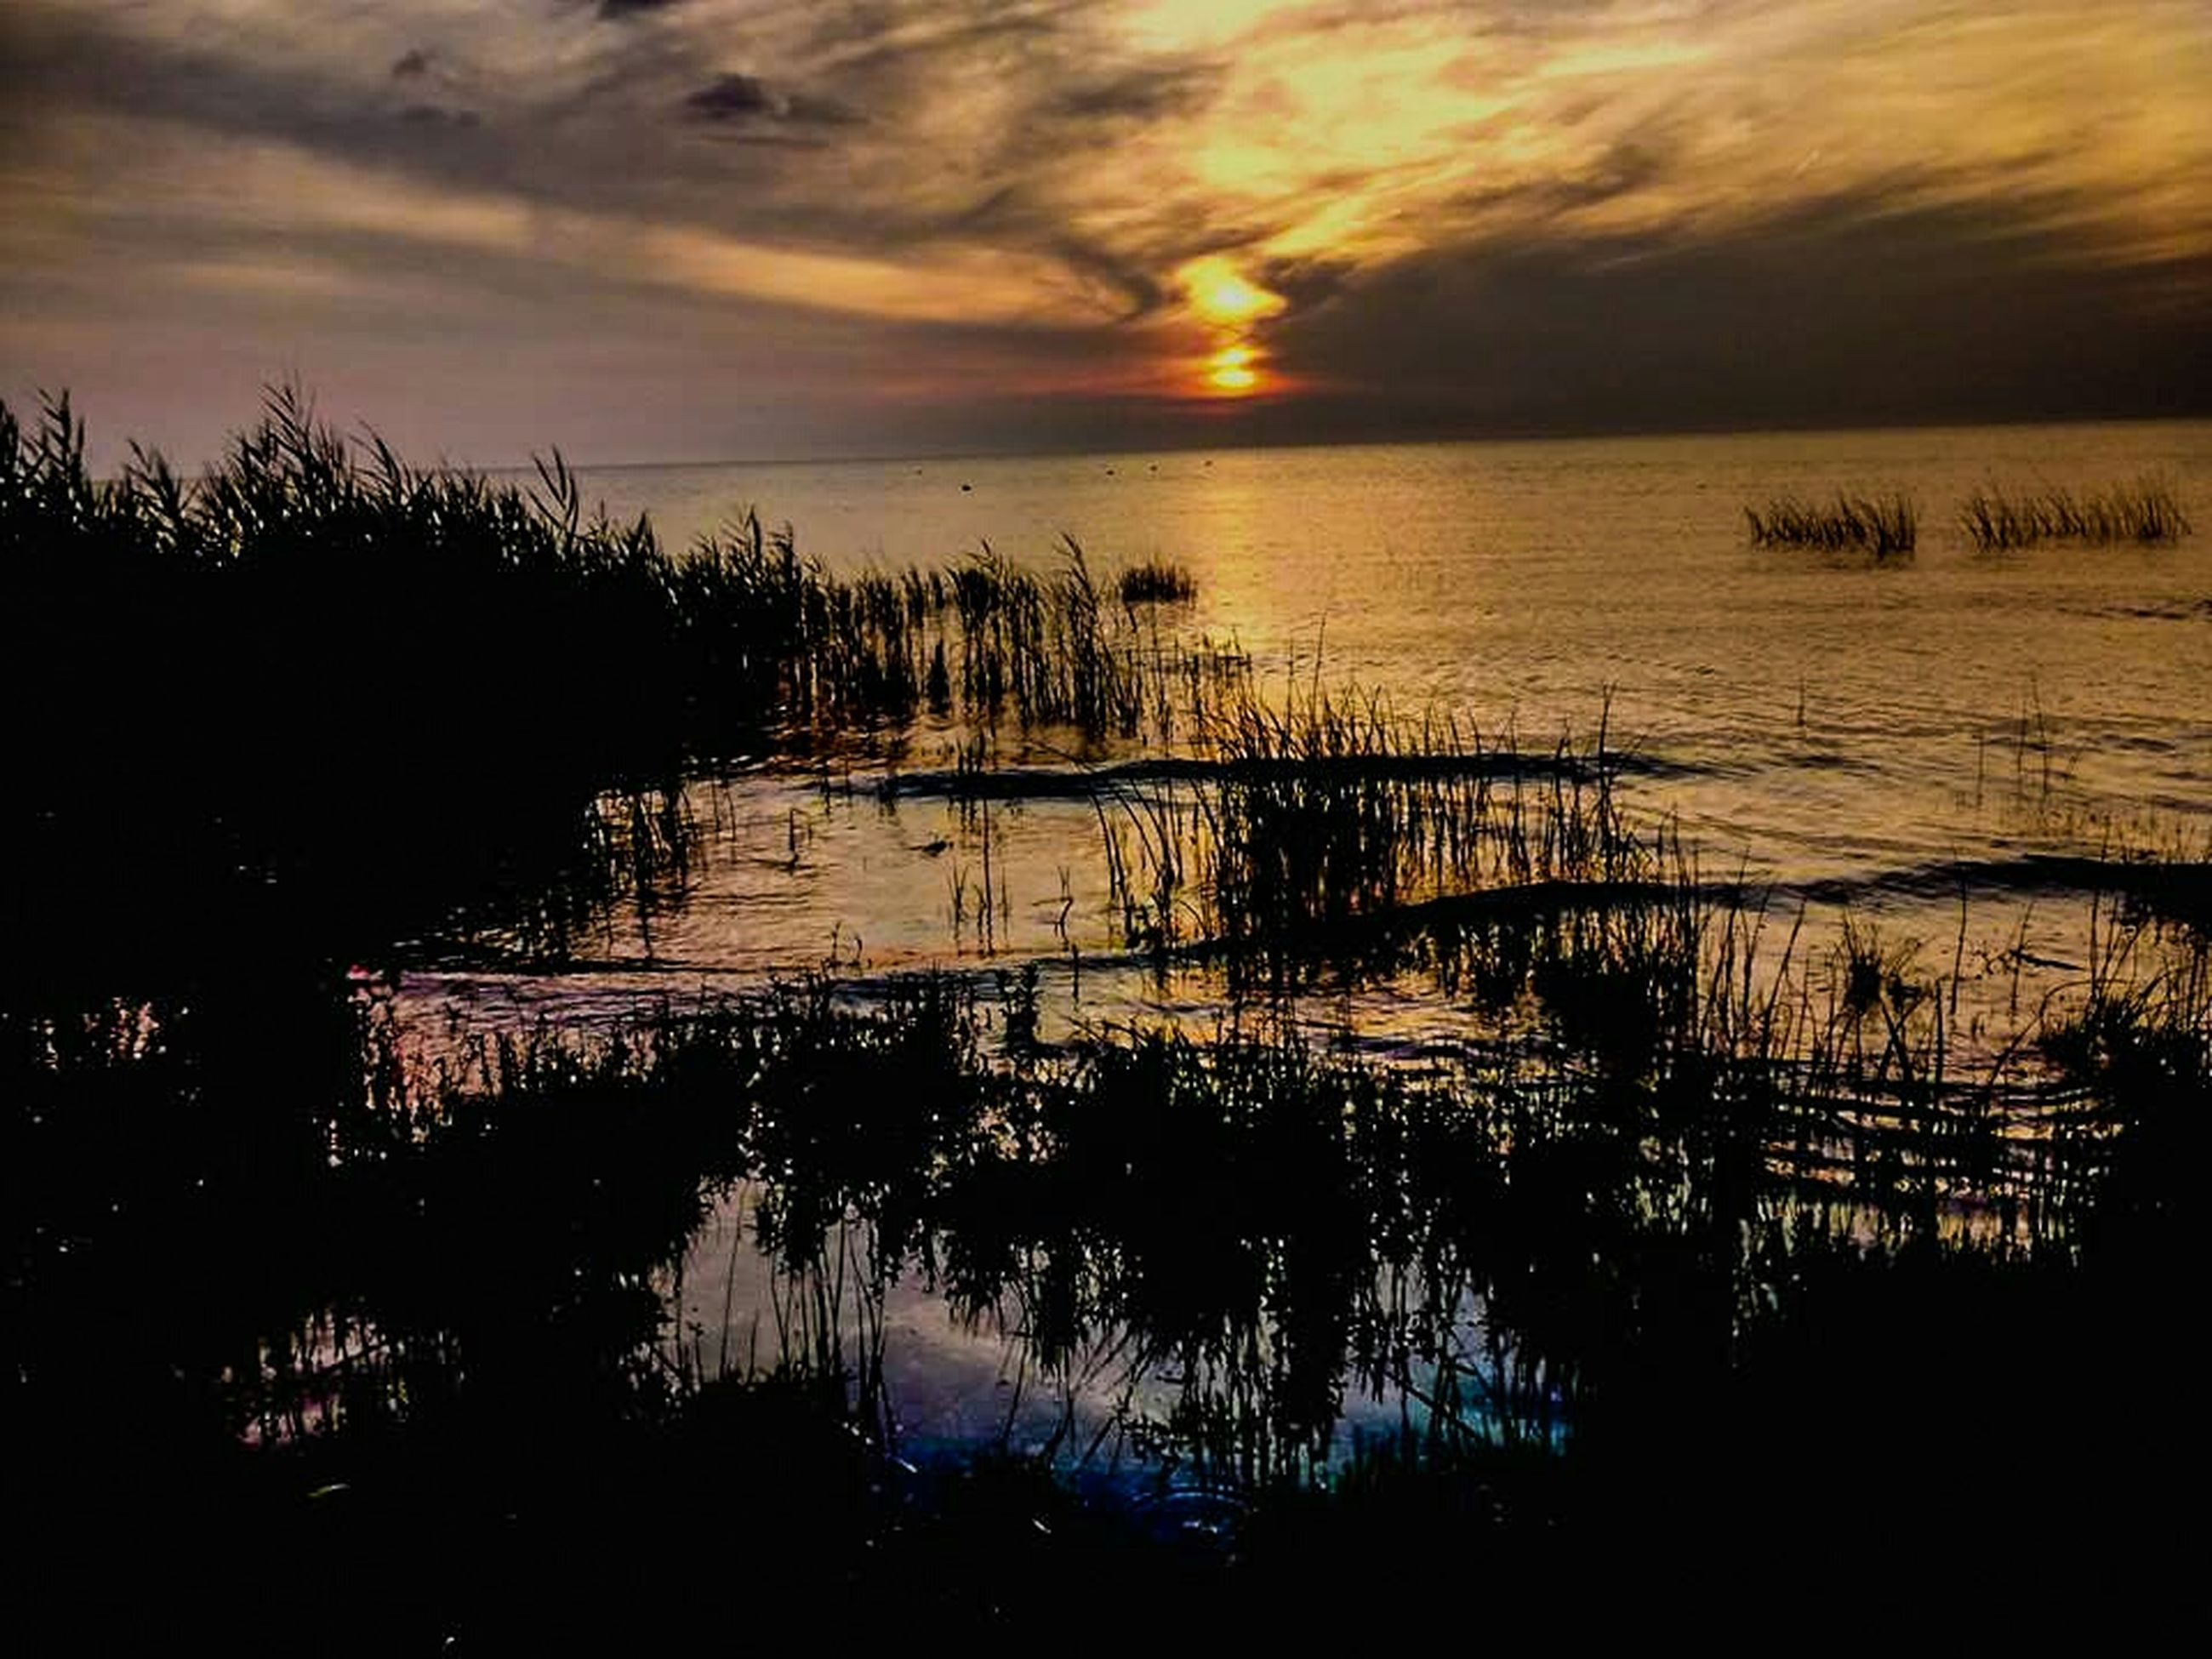 sunset, water, tranquil scene, tranquility, silhouette, sky, scenics, beauty in nature, sea, reflection, sun, nature, horizon over water, idyllic, cloud - sky, cloud, lake, orange color, plant, calm